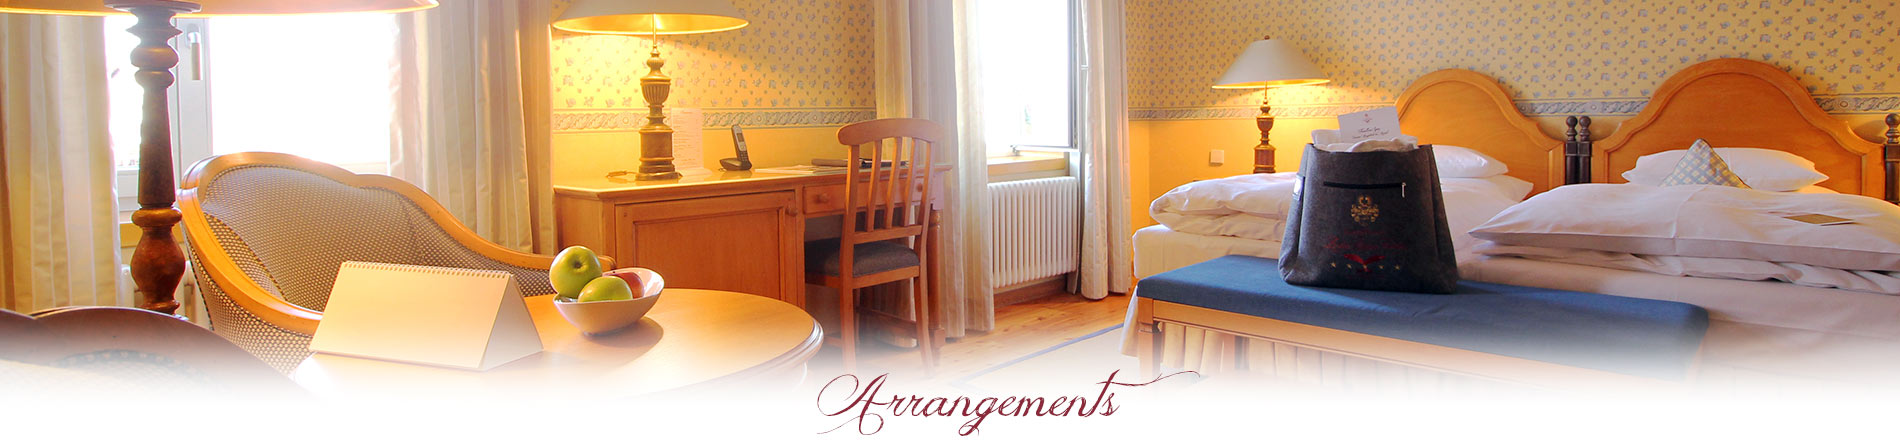 wellness-hotel-harz-arrangements-schr2